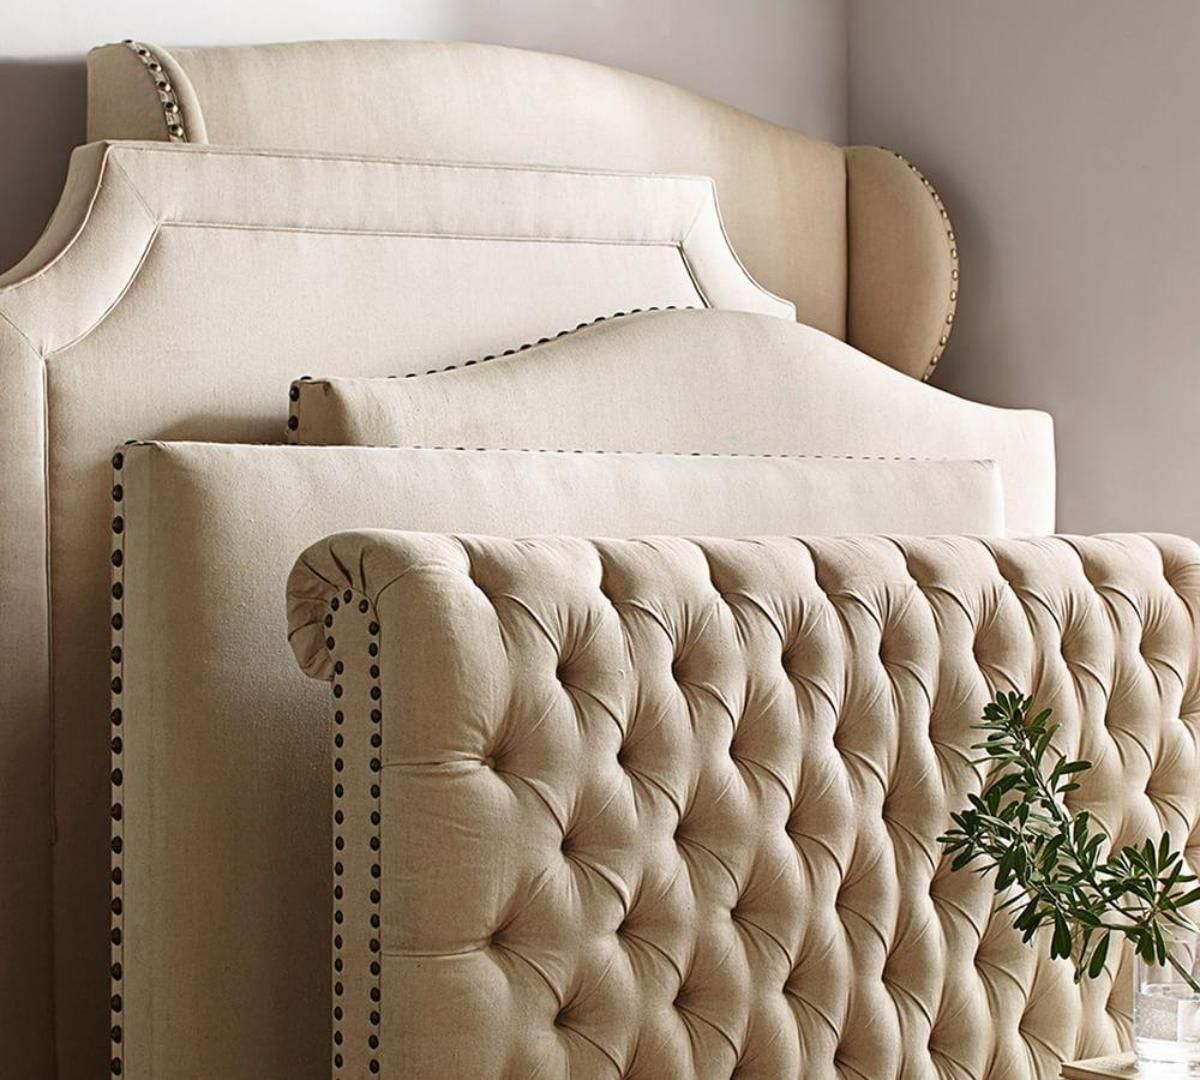 Chesterfield upholstered bed headboard. Pottery barn | KNstudioRo ...